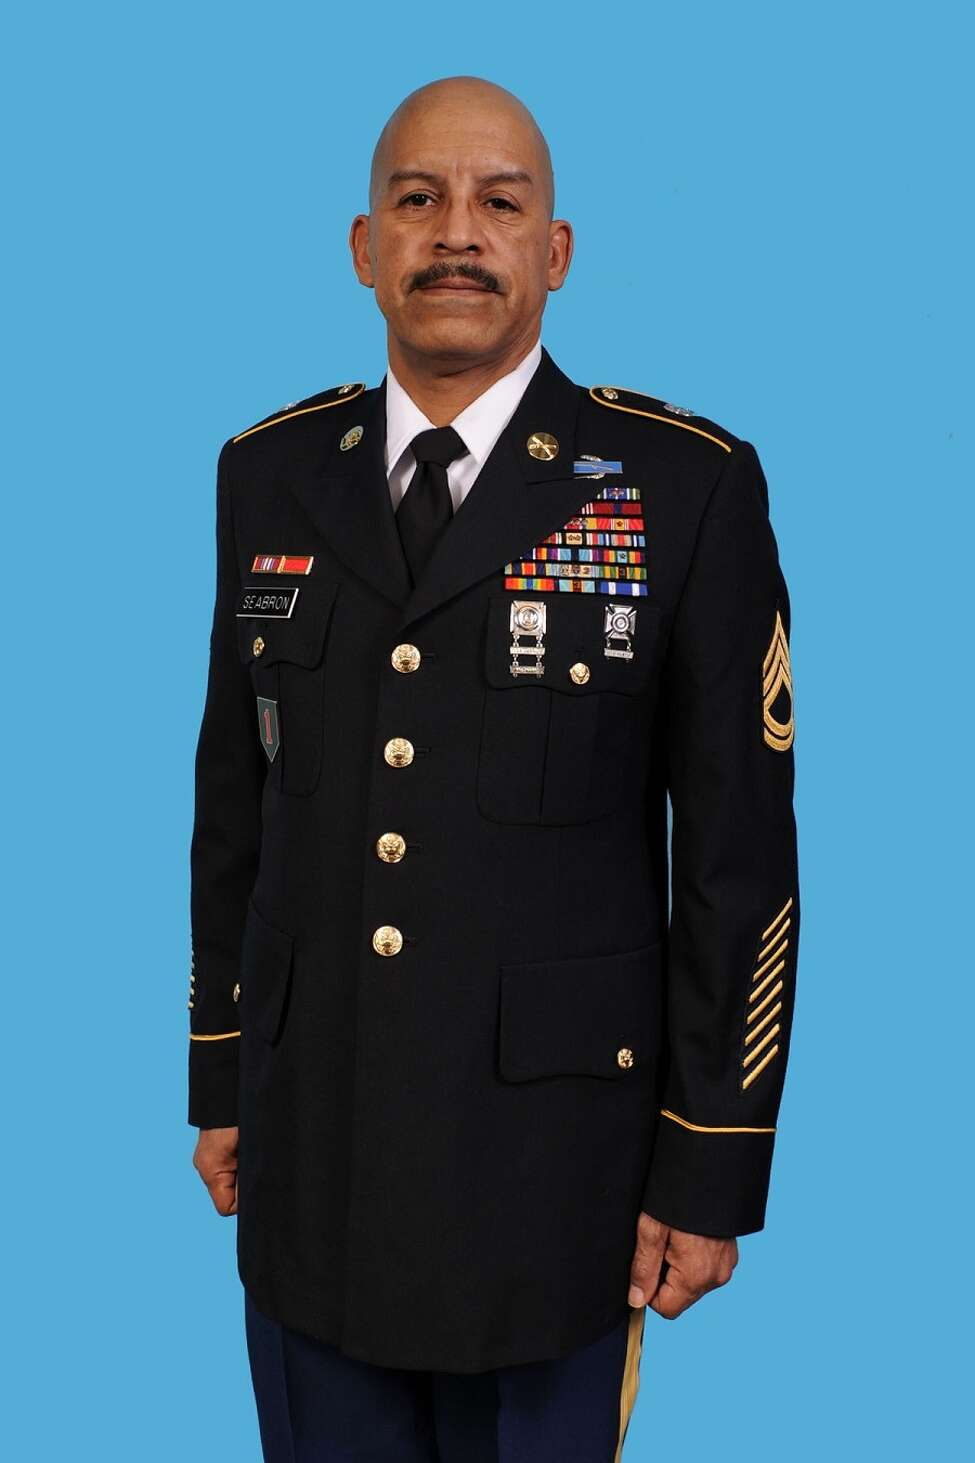 National Guard Master Sgt. Rudolph E. Seabron was killed in a 2017 hit-and-run crash while in Colonie for weekend training, town police said Monday. Police identified the pedestrian as 57-year-old Rudolph E. Seabron of Rome, Oneida County. (New York State Division of Military and Naval Affairs)